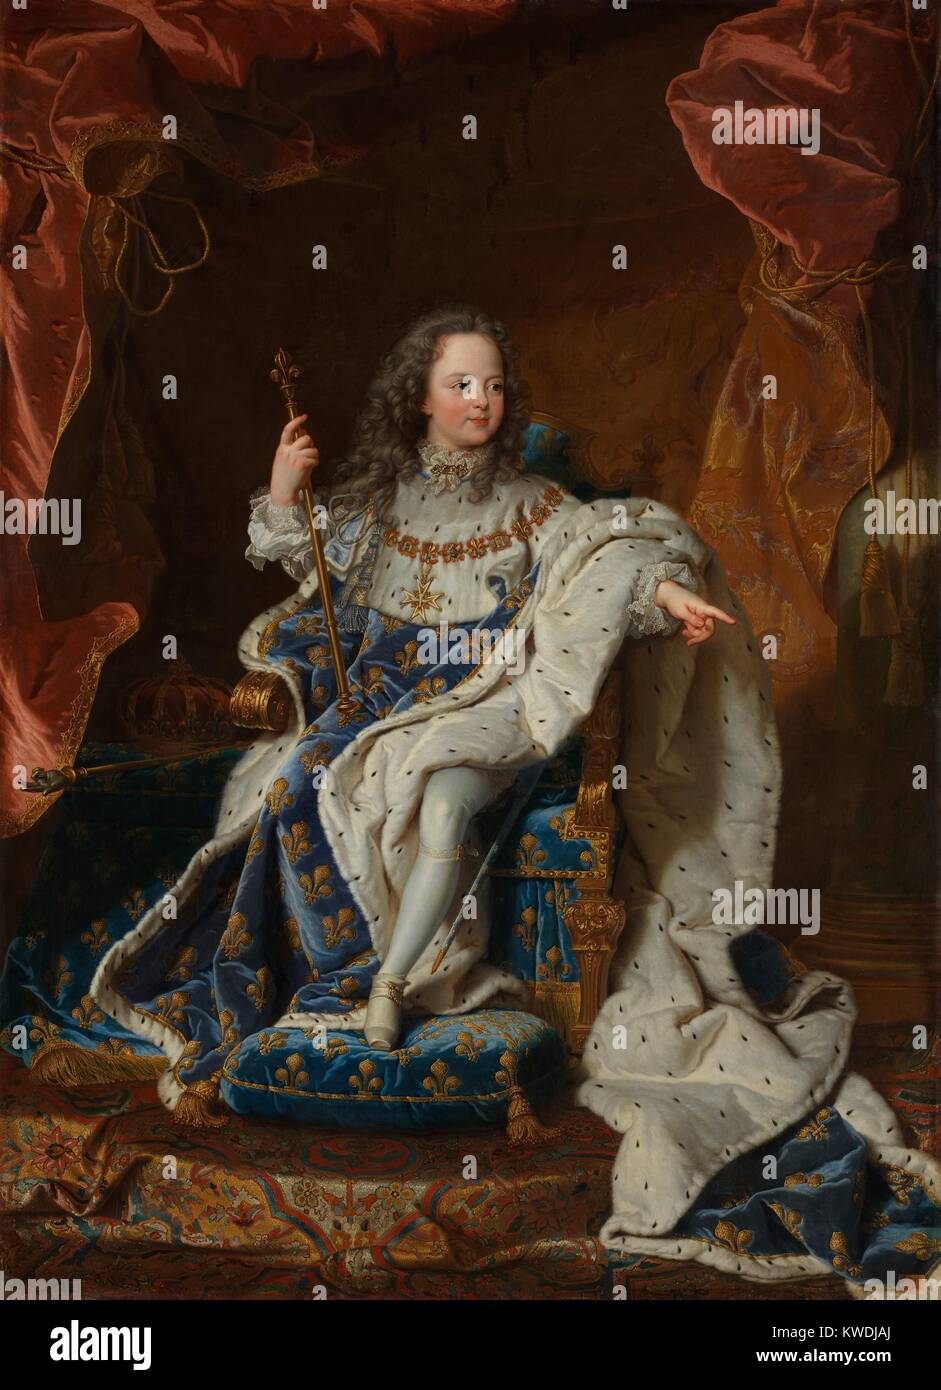 LOUIS XV, by Hyacinthe Rigaud, 1714, French Baroque painting, oil on canvas. He ascended the throne at age five, - Stock Image